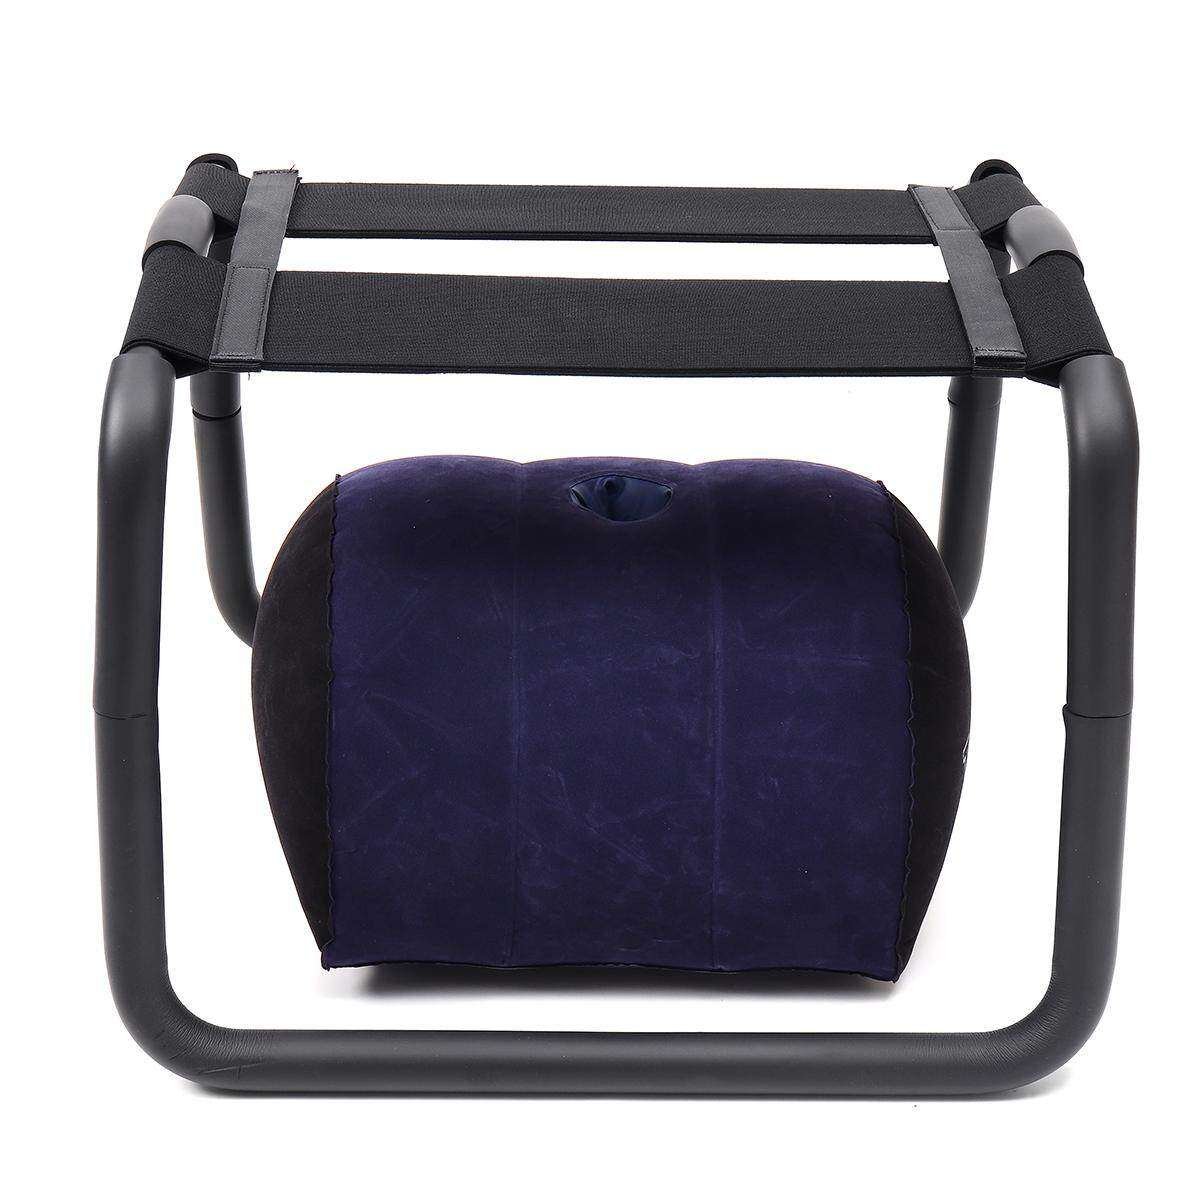 Bảng giá ToughageDetachable Bounced Chair Inflatable Pillow Swing Love Position Stool [Sponge Seat Cushion combo]